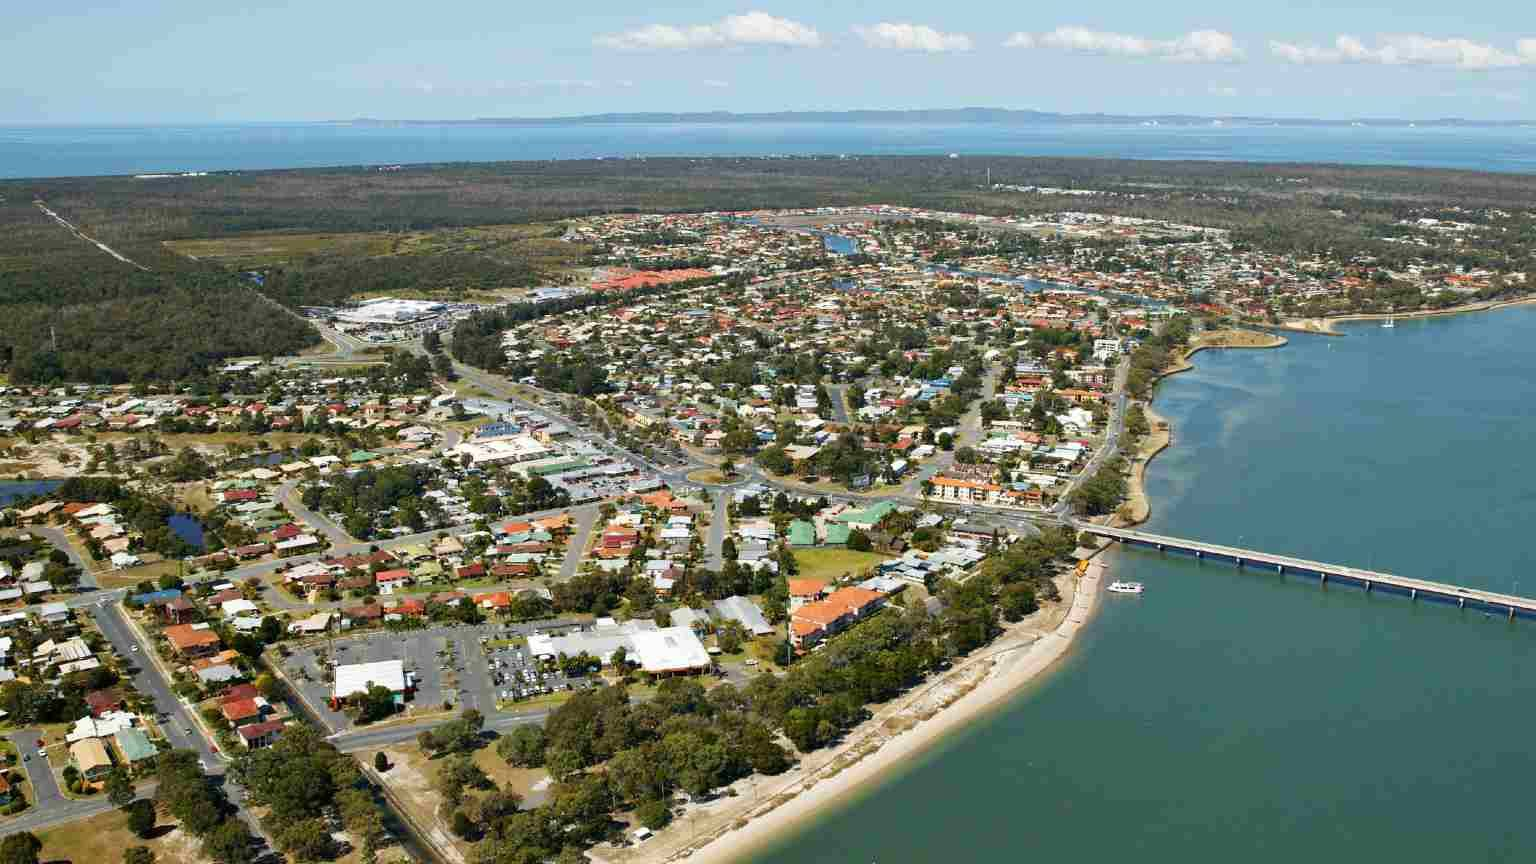 aerial view of bribie island